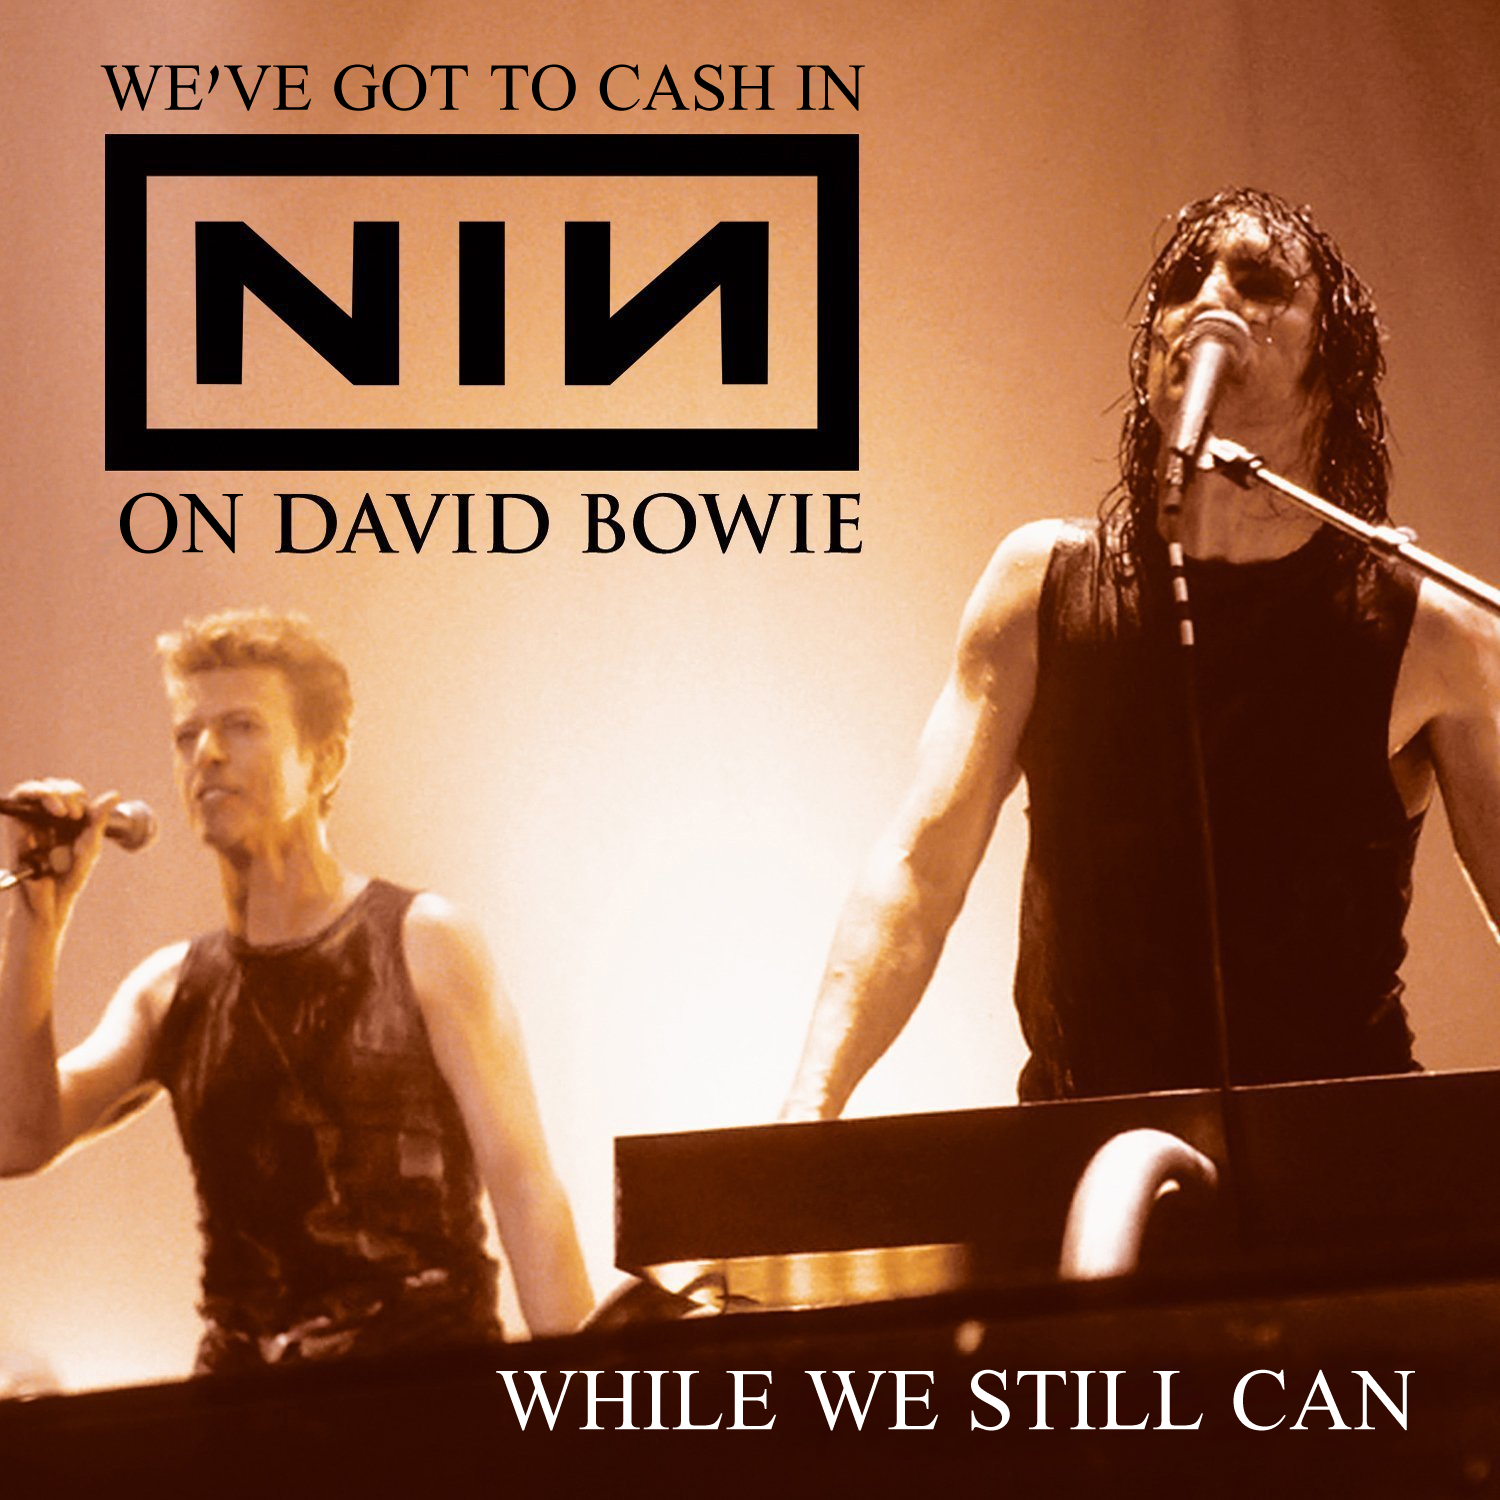 Album Cover Parodies of Nine Inch Nails Feat. David Bowie - We Prick ...